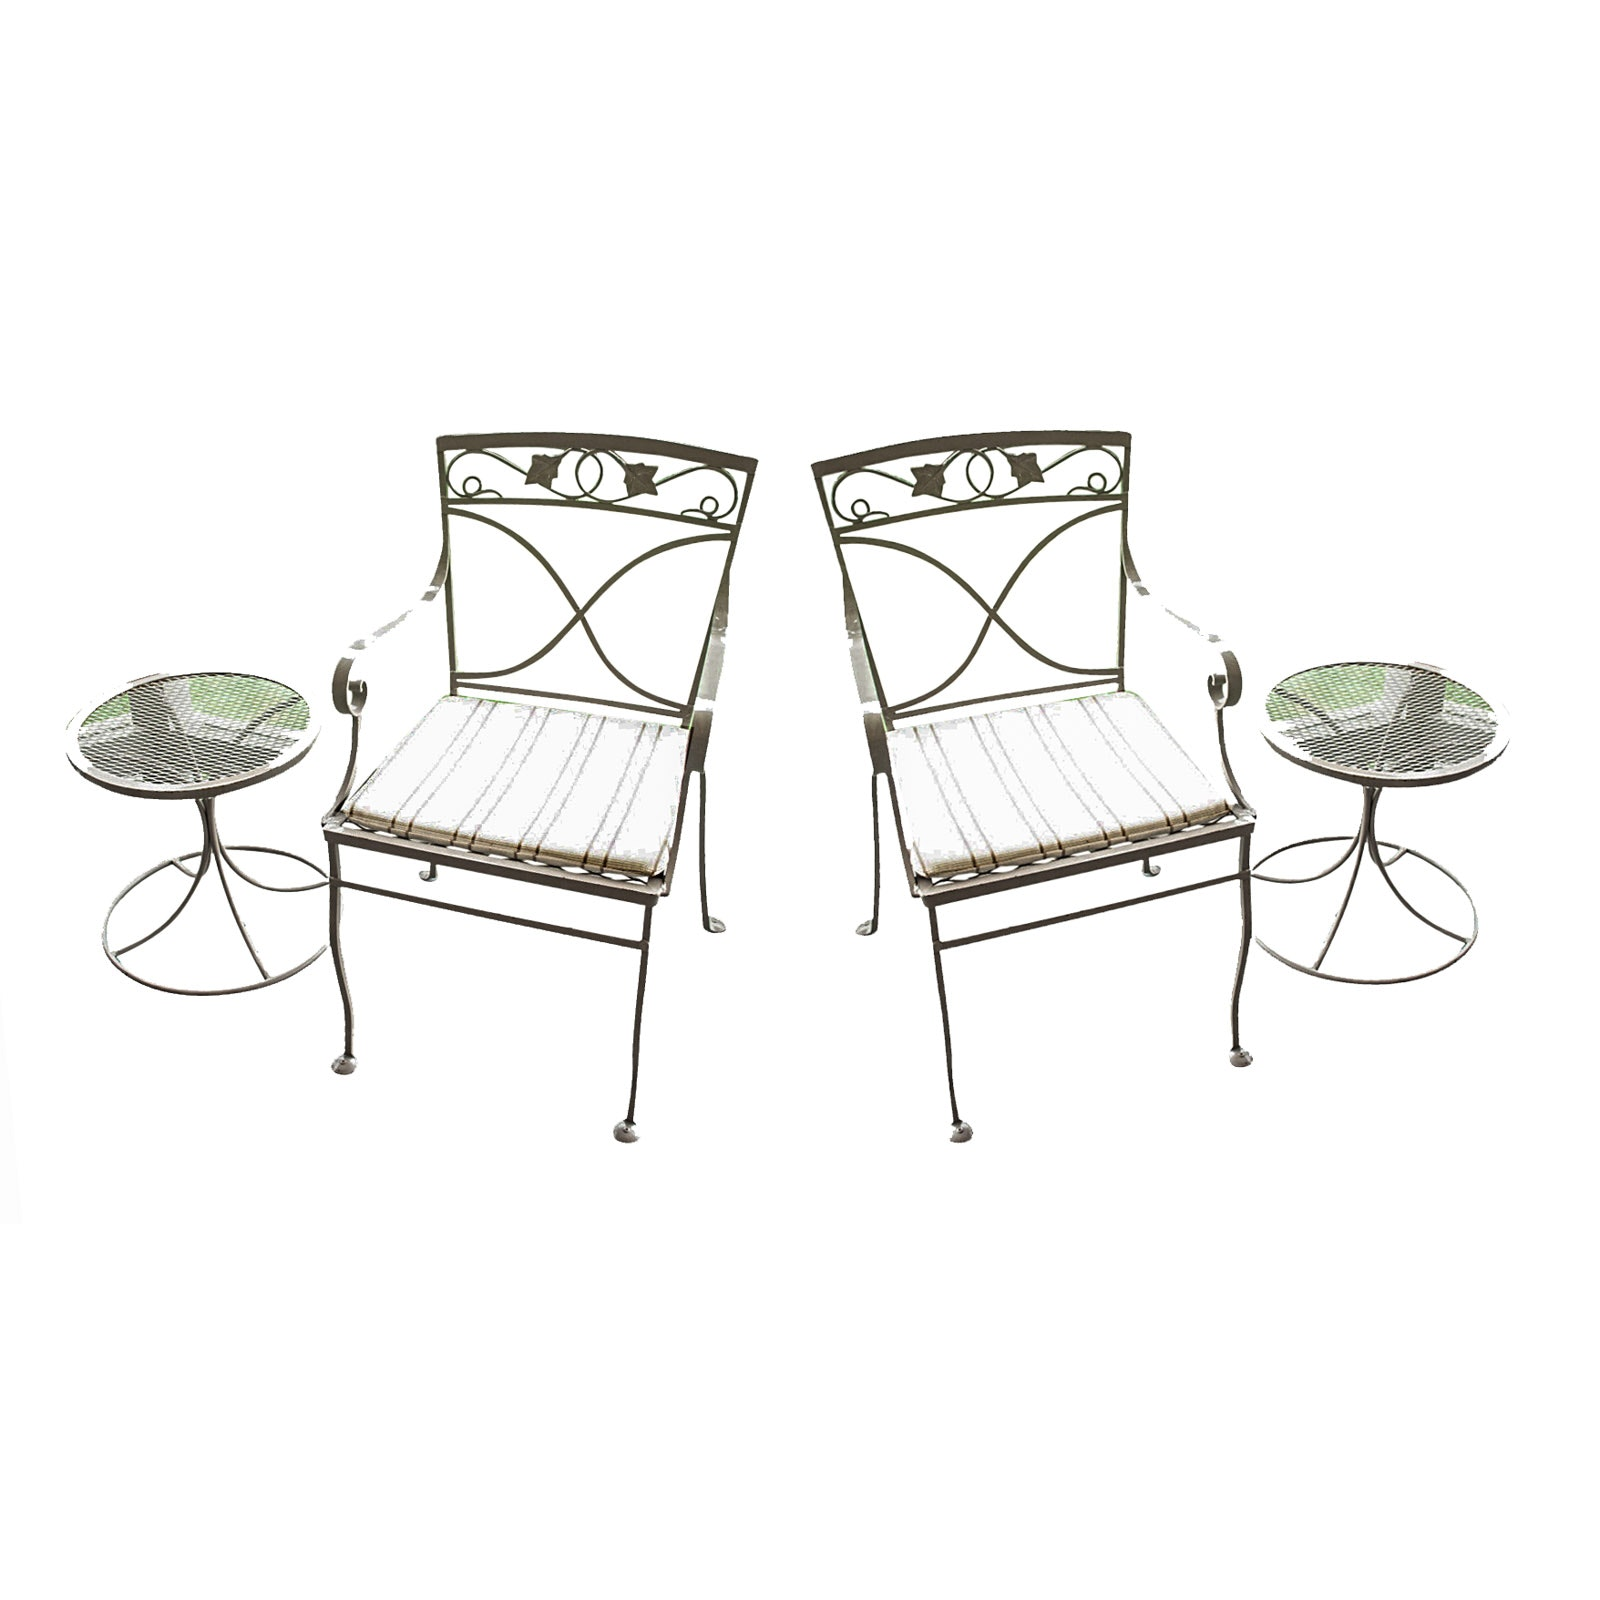 Pair of Patio Chairs and Side Tables